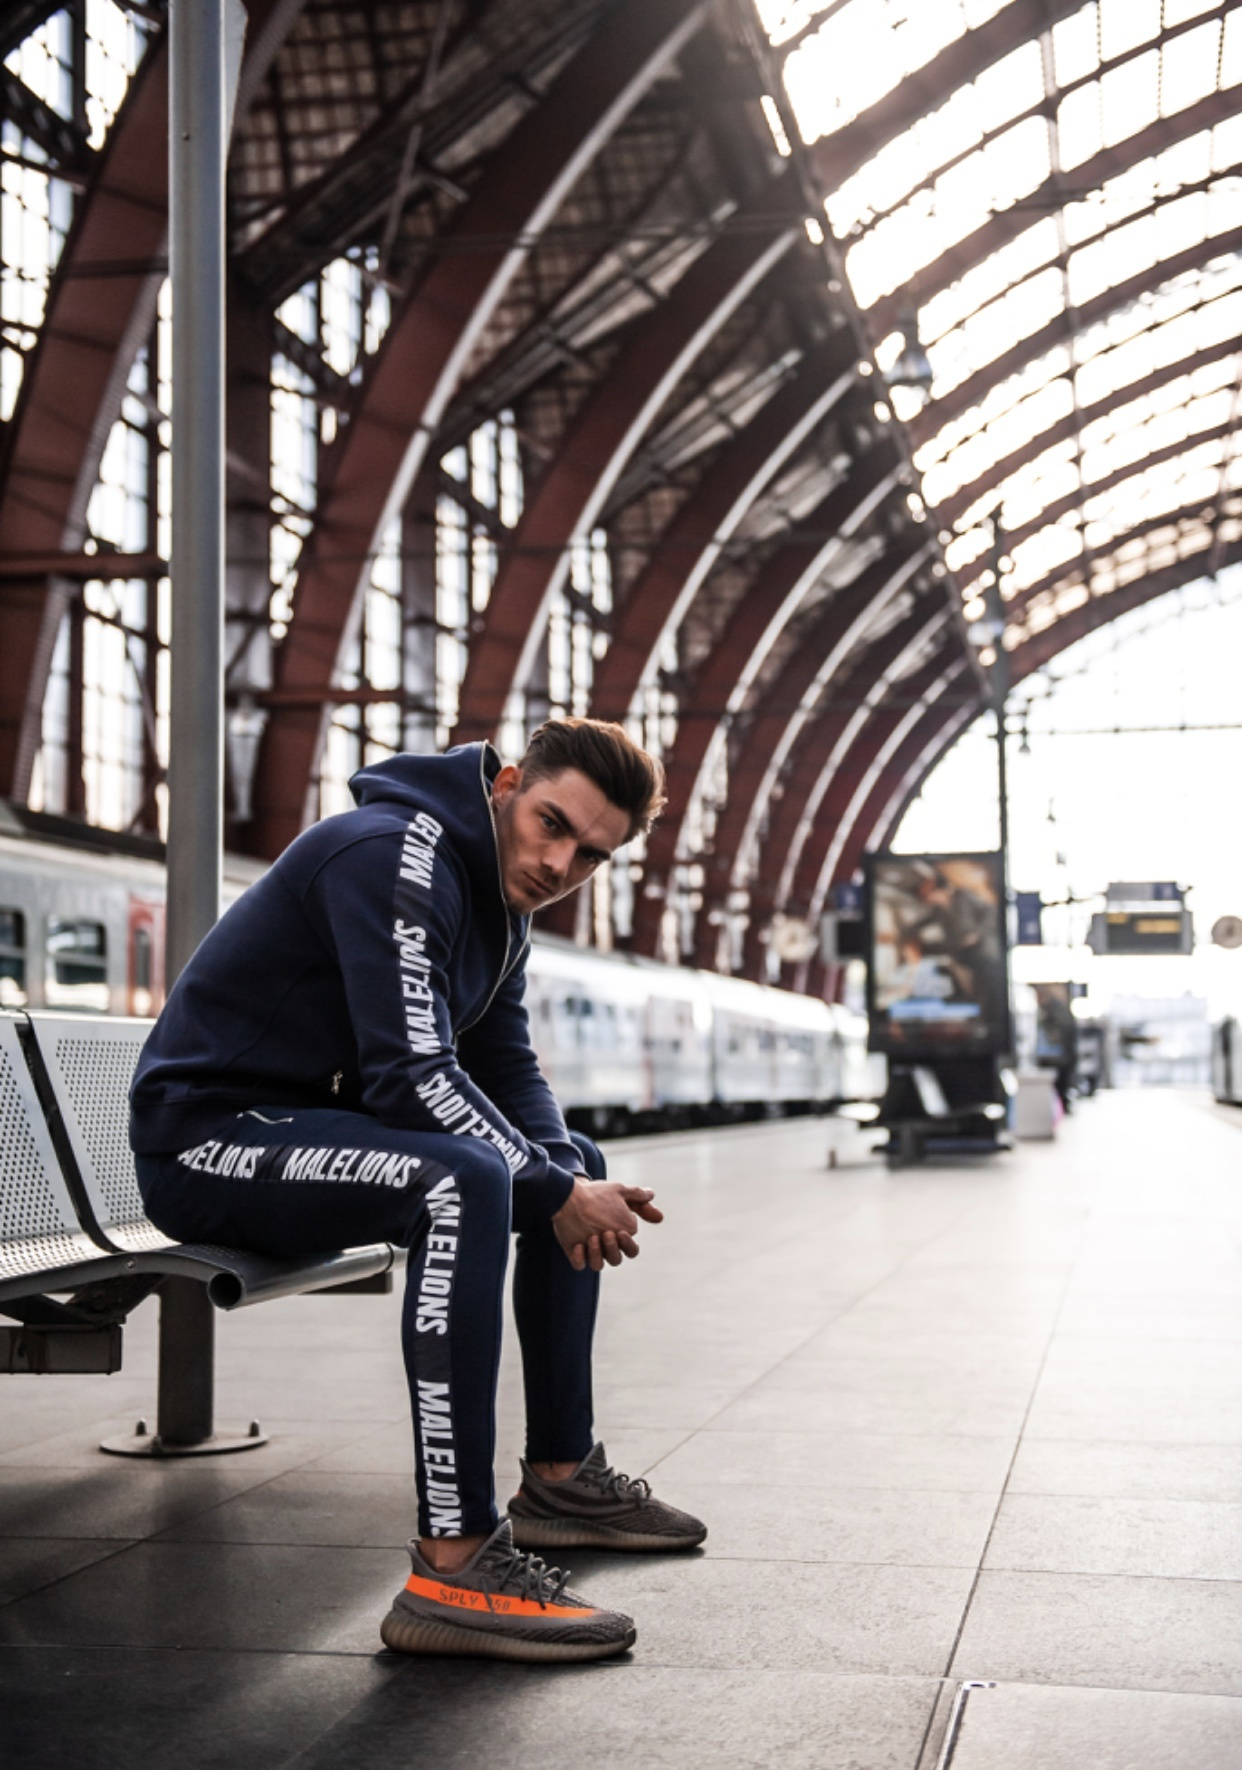 malelions-blauw-tracksuit